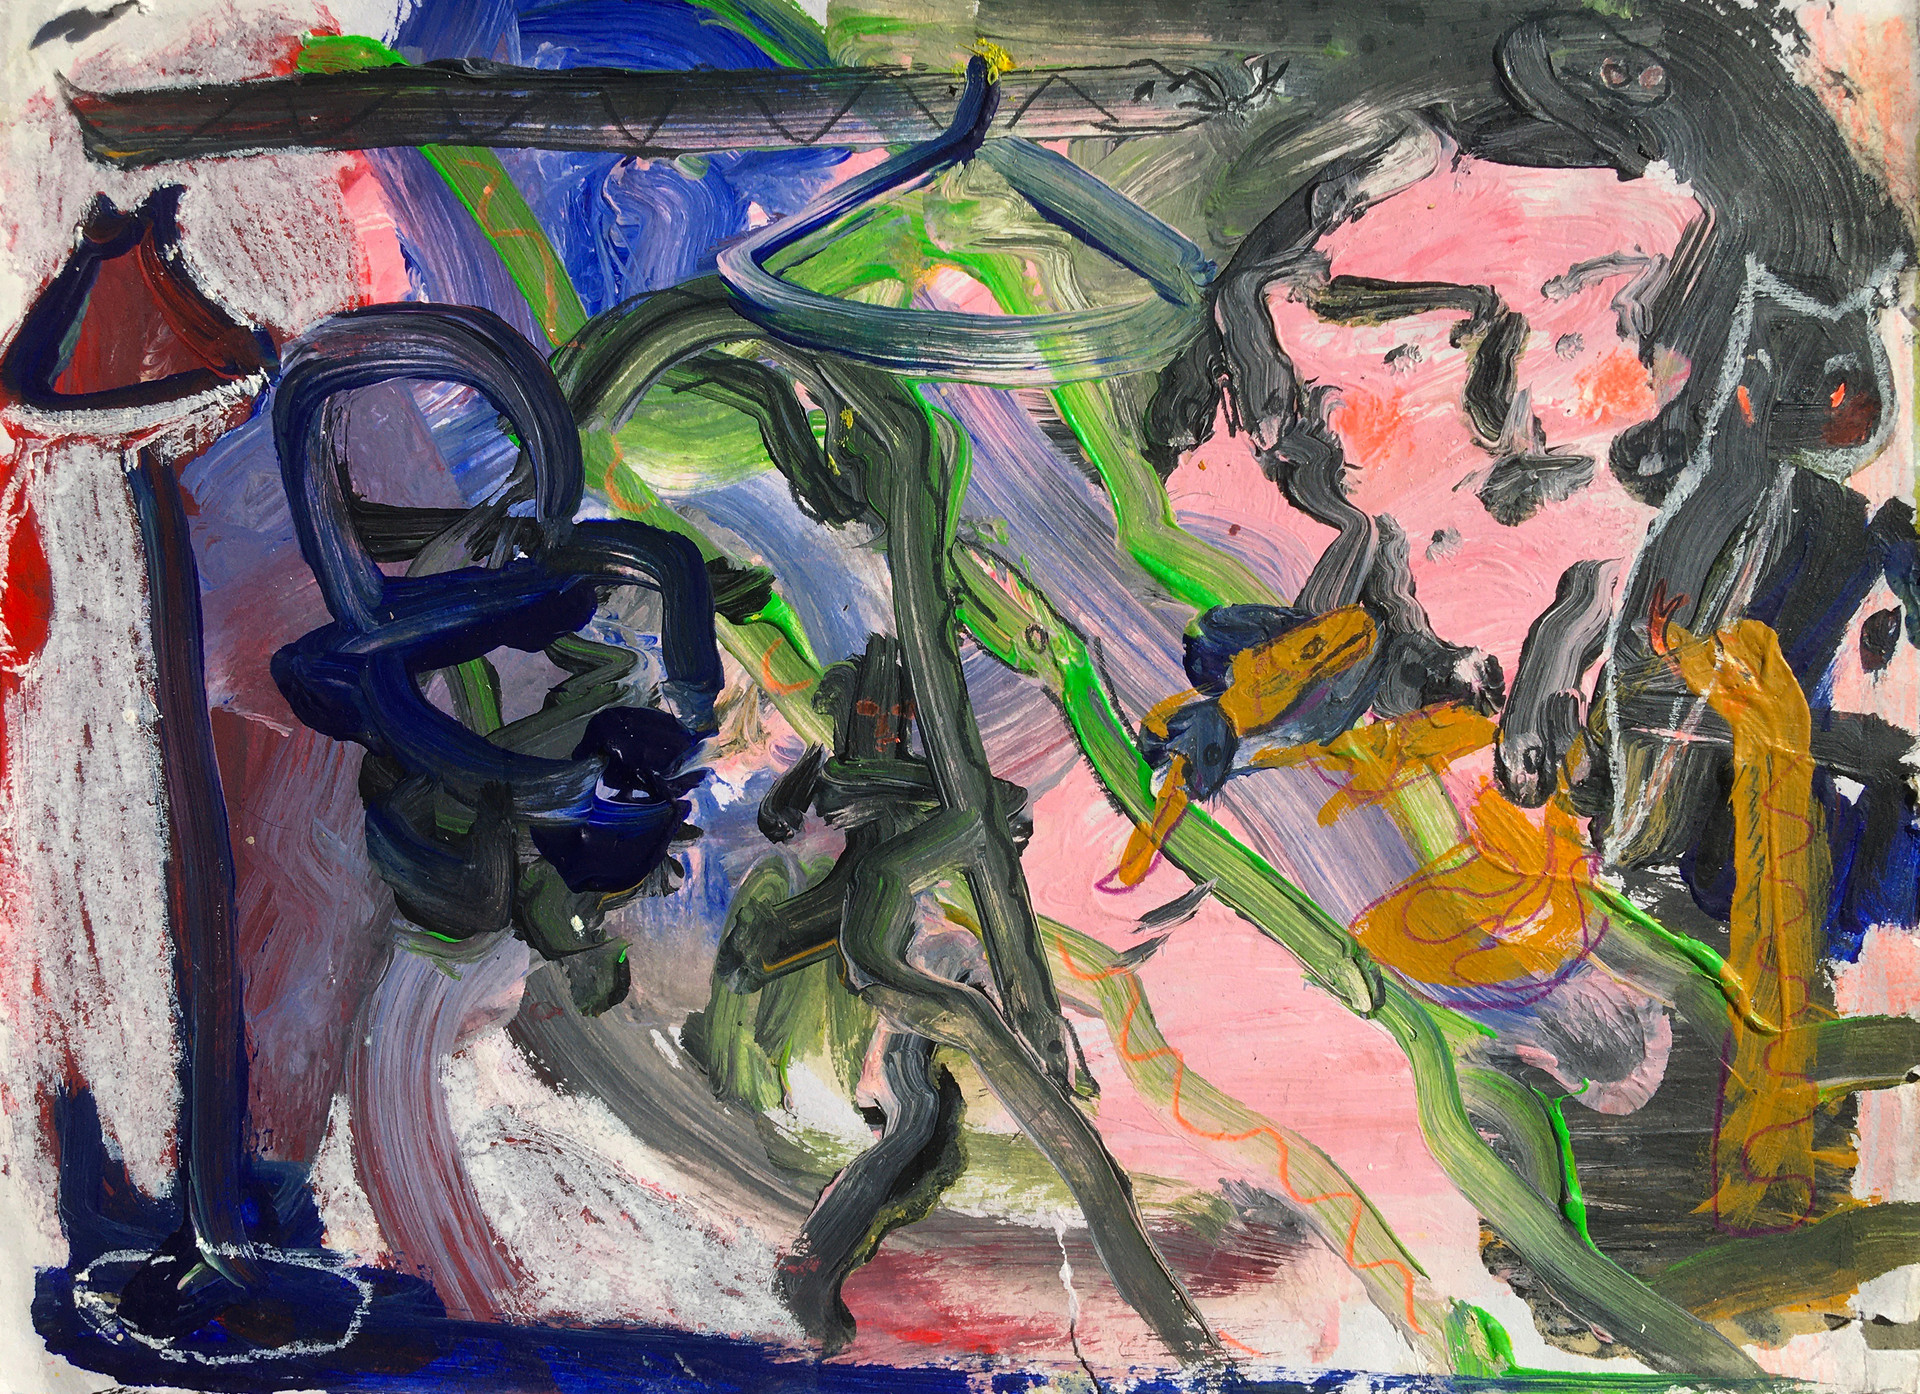 My Hair Hissed and Turned To Serpents, My Eyes Saw The World In Stone, 2020, oil on paper, 29 x 20.5 cm